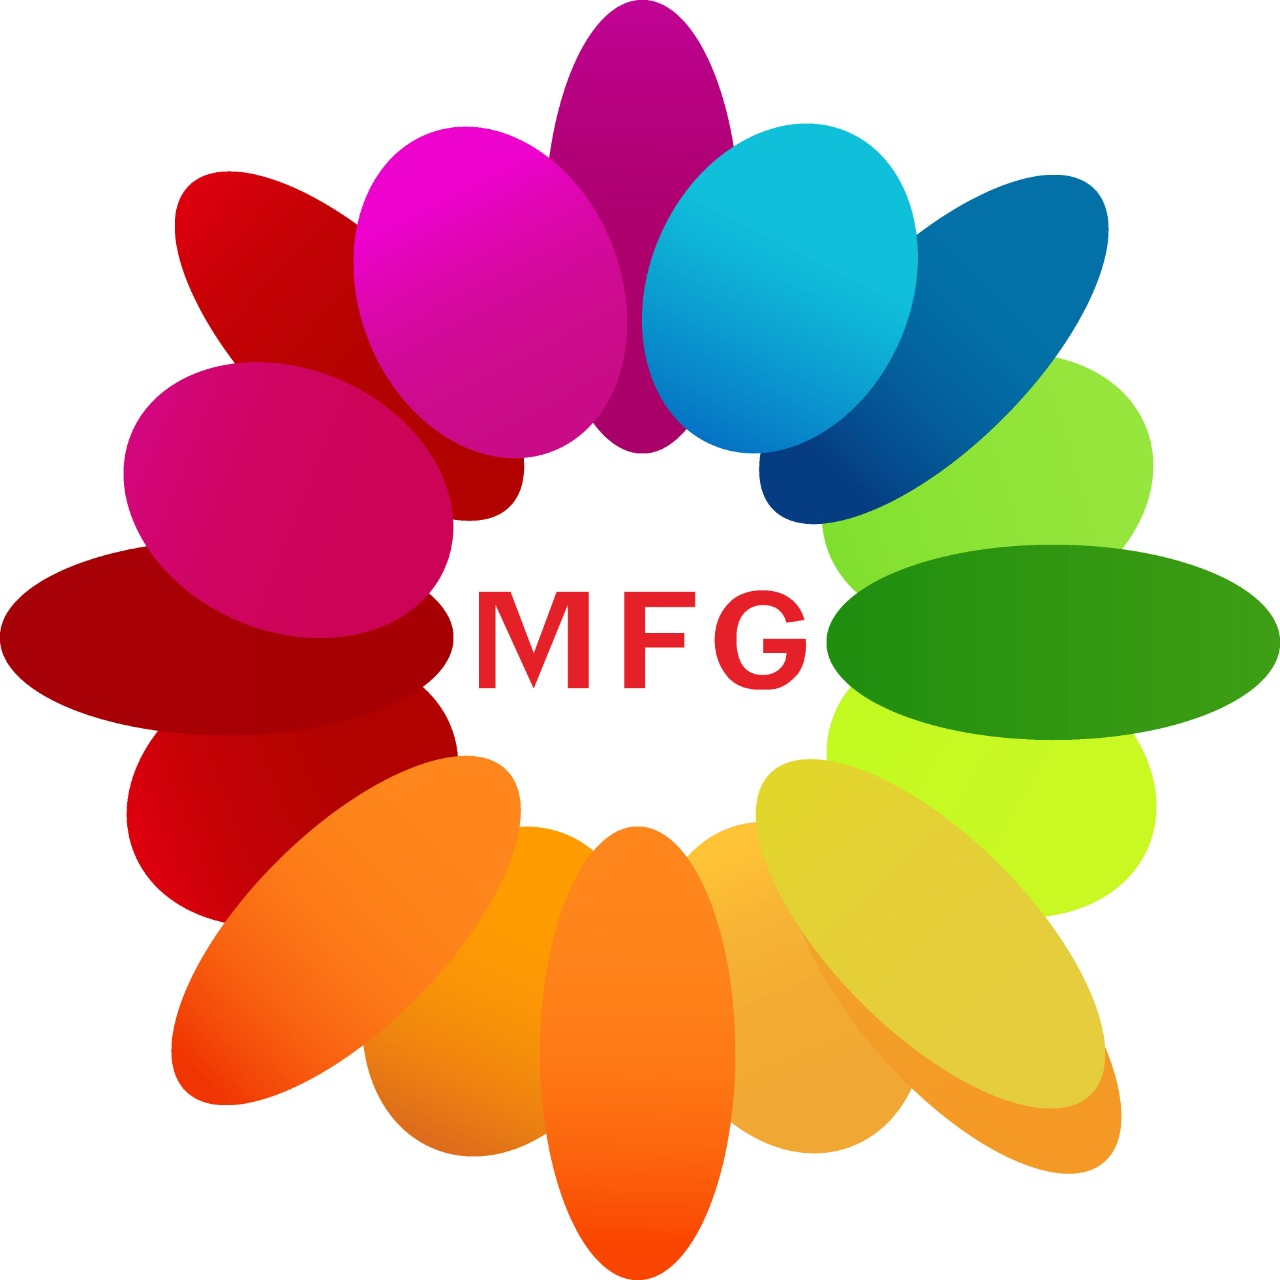 1 kg double chocolate cake with bottle of red wine